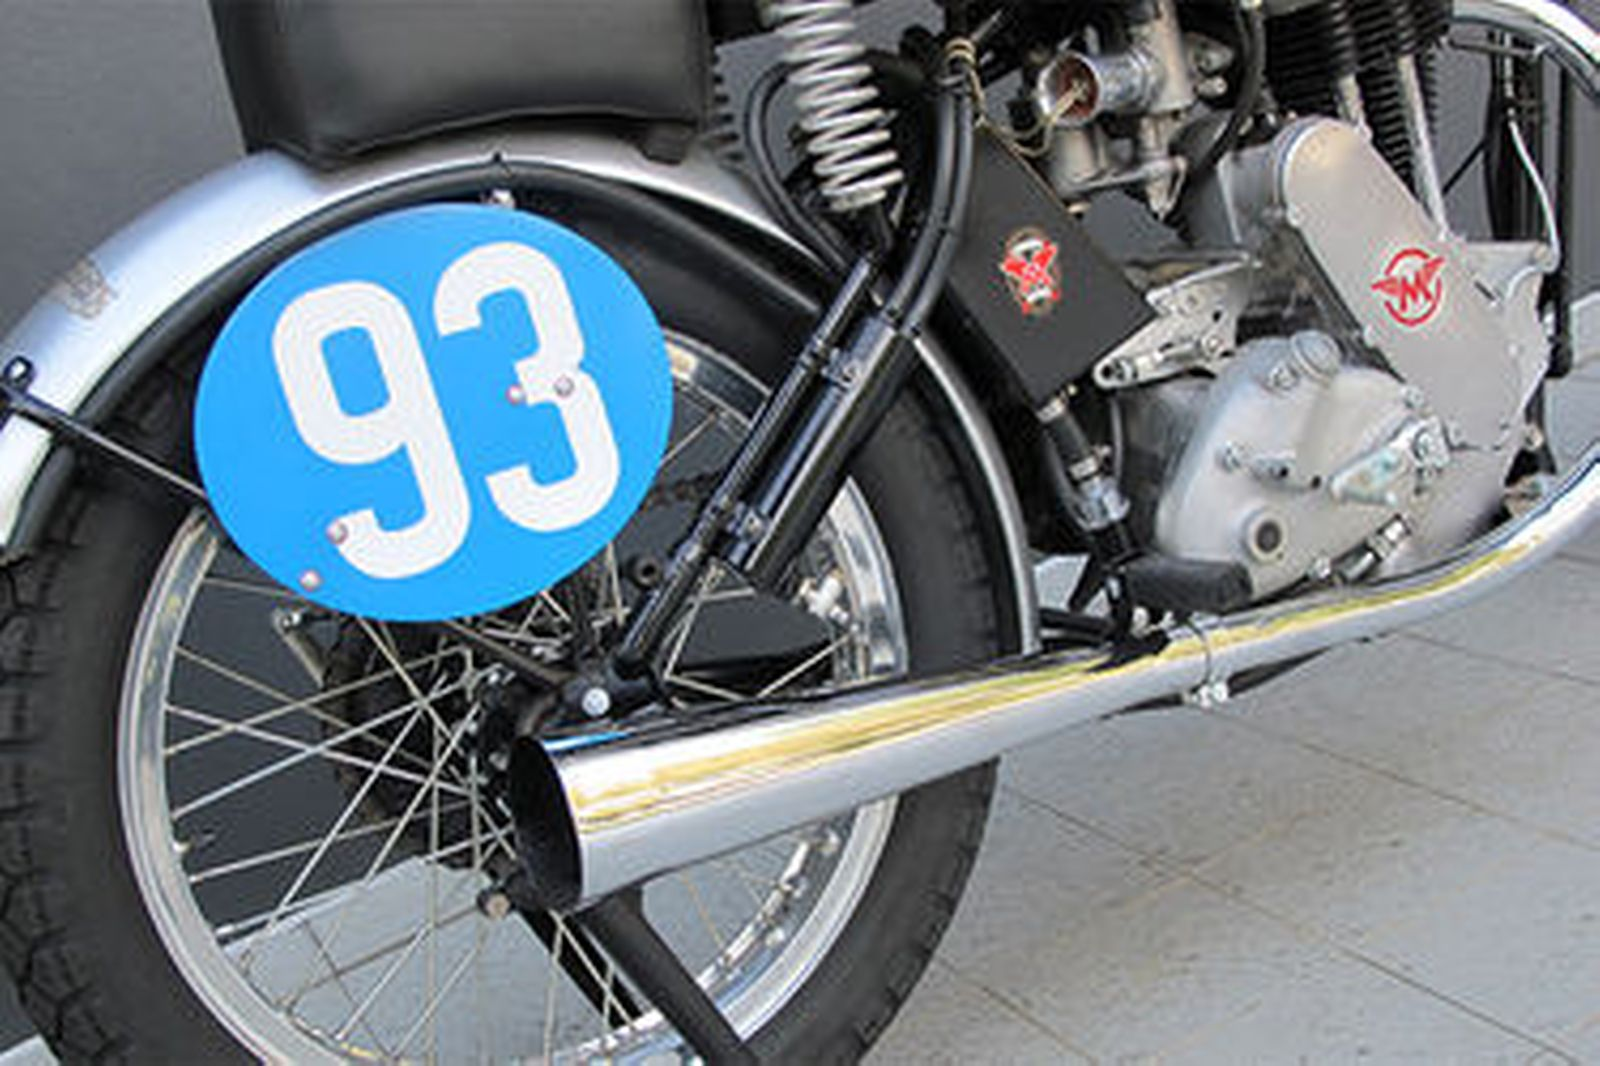 Matchless G3L 350cc 'Race Replica' Motorcycle